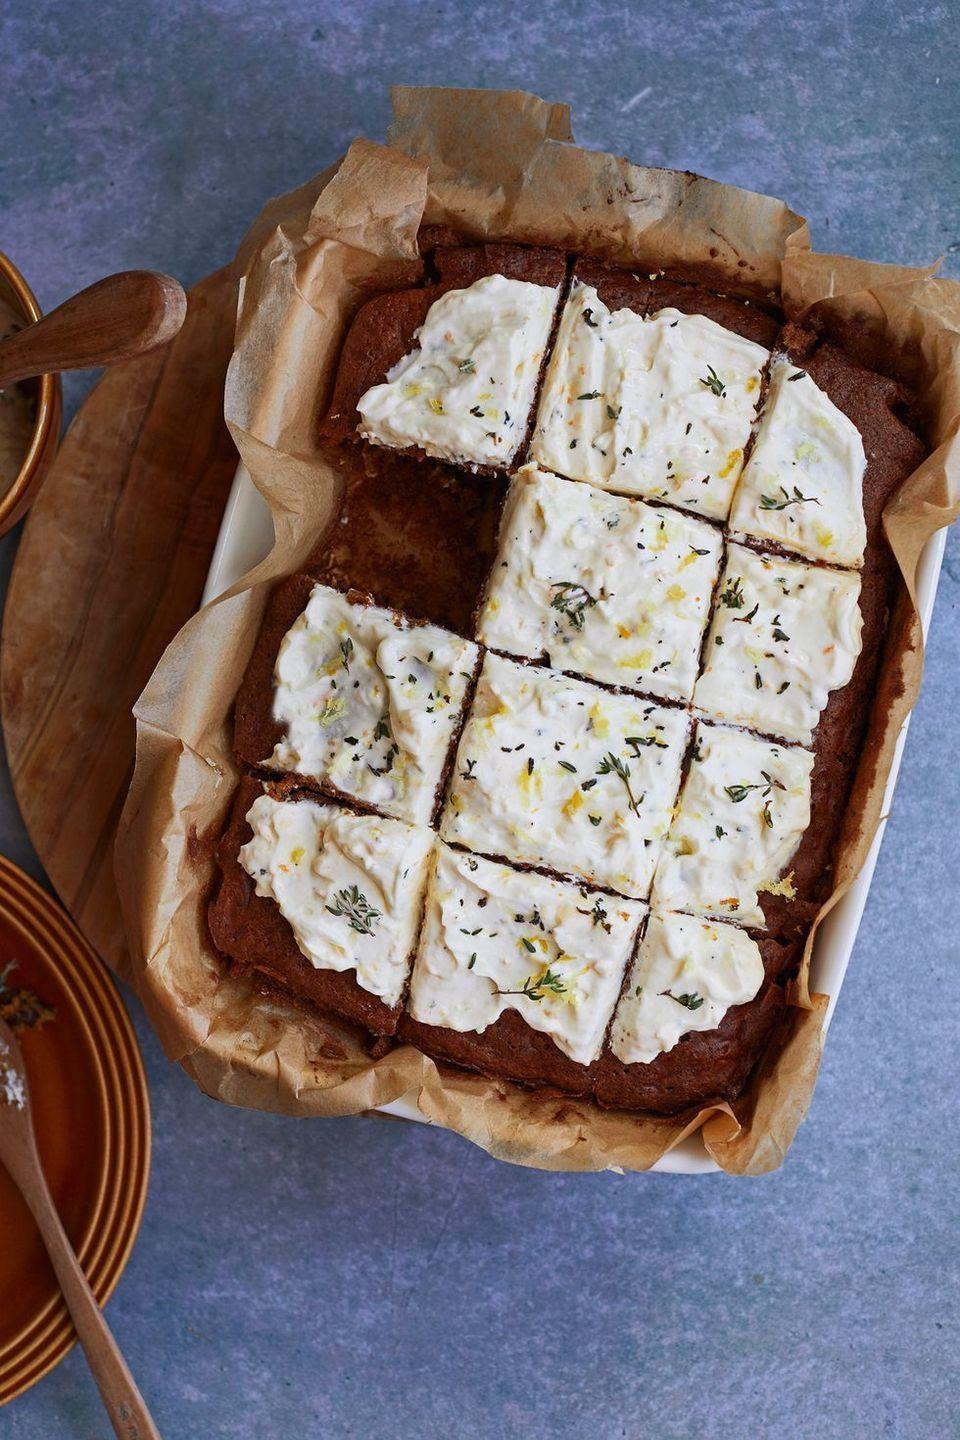 """<p><a href=""""https://www.delish.com/uk/cooking/recipes/g33521348/best-carrot-cake-recipes/"""" rel=""""nofollow noopener"""" target=""""_blank"""" data-ylk=""""slk:Carrot cake"""" class=""""link rapid-noclick-resp"""">Carrot cake</a> traybake is one of our favourite springtime <a href=""""https://www.delish.com/uk/cooking/recipes/g31433515/best-cake-recipes/"""" rel=""""nofollow noopener"""" target=""""_blank"""" data-ylk=""""slk:bakes"""" class=""""link rapid-noclick-resp"""">bakes</a> to make. The ricotta frosting is a deliciously light and tangy twist on the classic cream cheese topping. Thyme might sound unusual here but the subtle herbal flavour works perfectly with the warming spices and <a href=""""https://www.delish.com/uk/cooking/recipes/a34445804/chocolate-orange-doughnuts/"""" rel=""""nofollow noopener"""" target=""""_blank"""" data-ylk=""""slk:orange"""" class=""""link rapid-noclick-resp"""">orange</a> flavour in the cake.</p><p>Get the <a href=""""https://www.delish.com/uk/cooking/recipes/a35305446/carrot-cake-traybake/"""" rel=""""nofollow noopener"""" target=""""_blank"""" data-ylk=""""slk:Carrot Cake Traybake"""" class=""""link rapid-noclick-resp"""">Carrot Cake Traybake</a> recipe. </p>"""